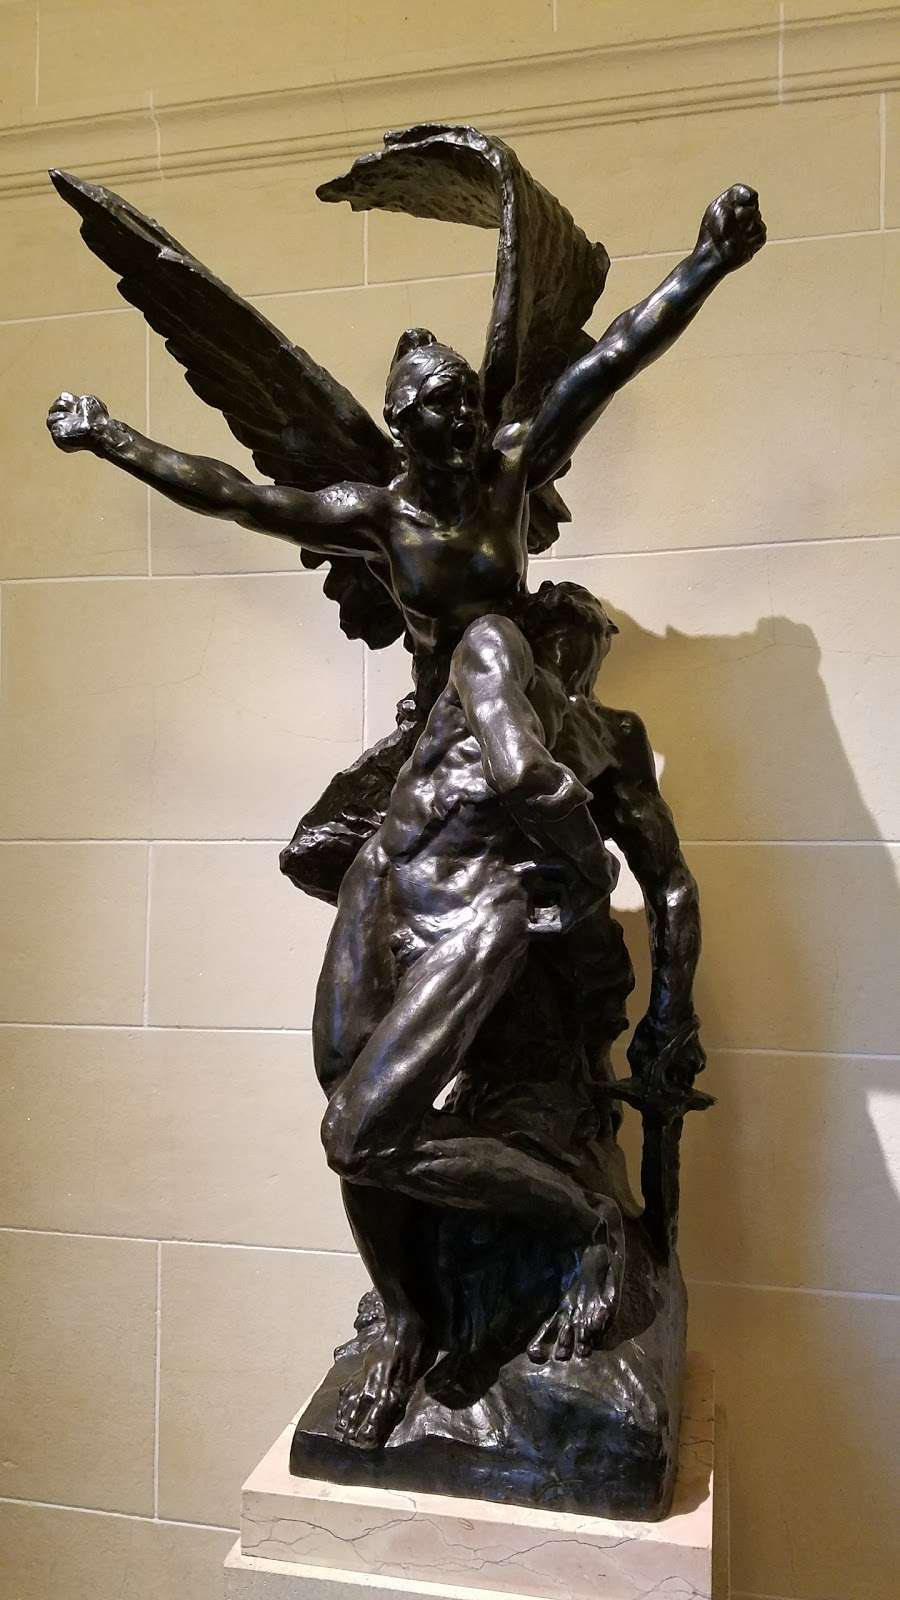 Rodin Museum - museum  | Photo 10 of 10 | Address: 2151 Benjamin Franklin Pkwy, Philadelphia, PA 19130, USA | Phone: (215) 763-8100